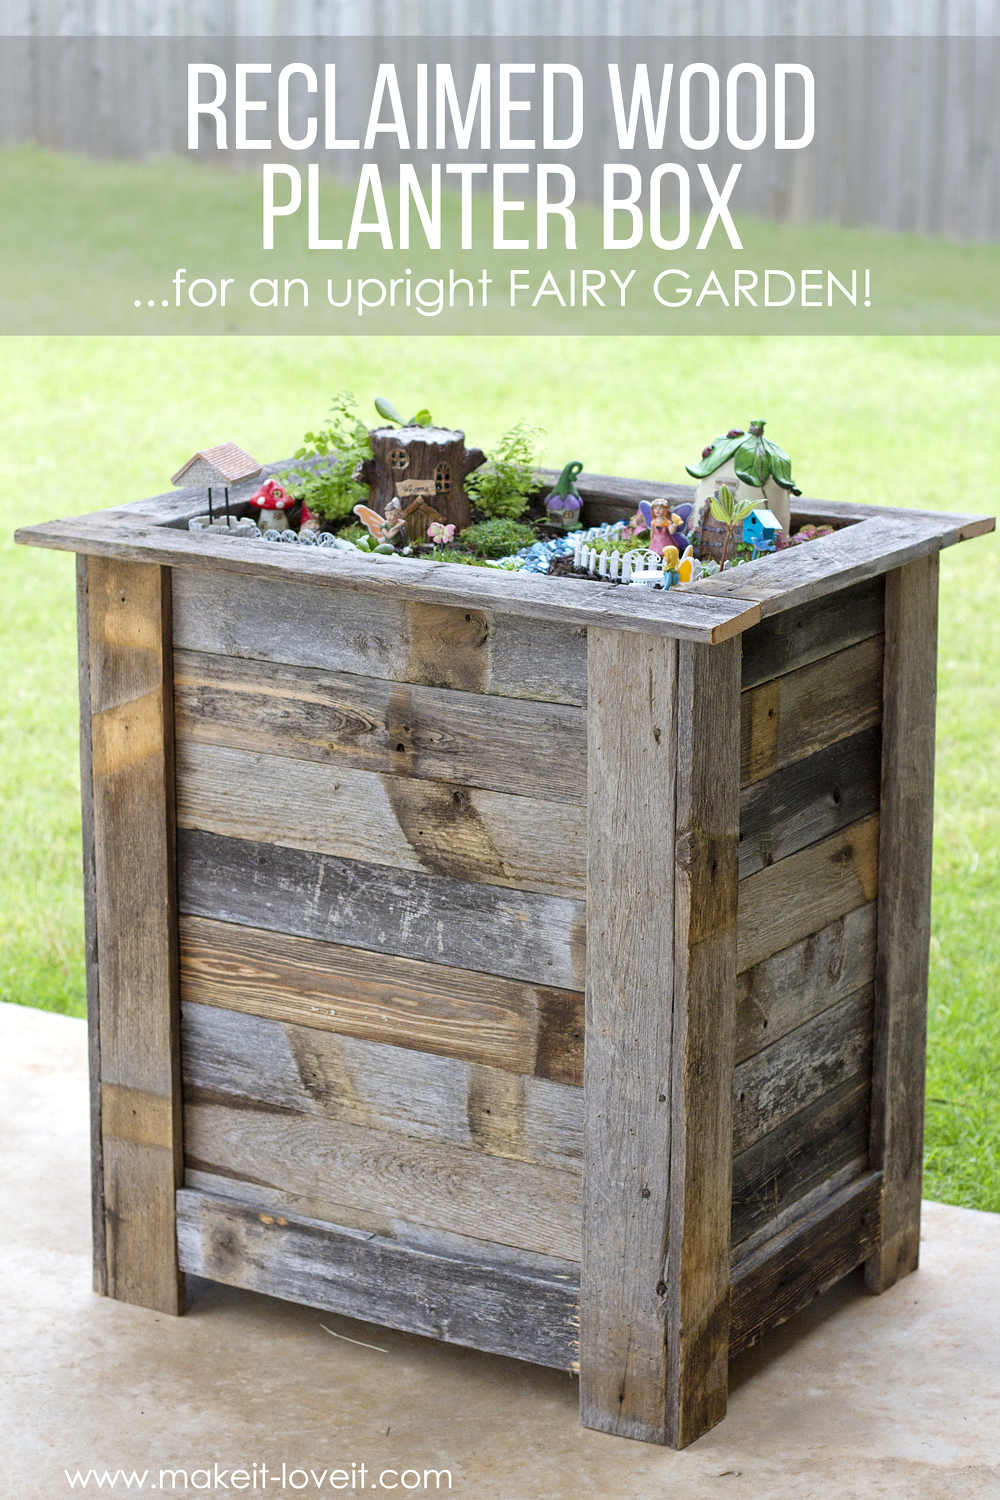 DIY Reclaimed Wood Planter Box